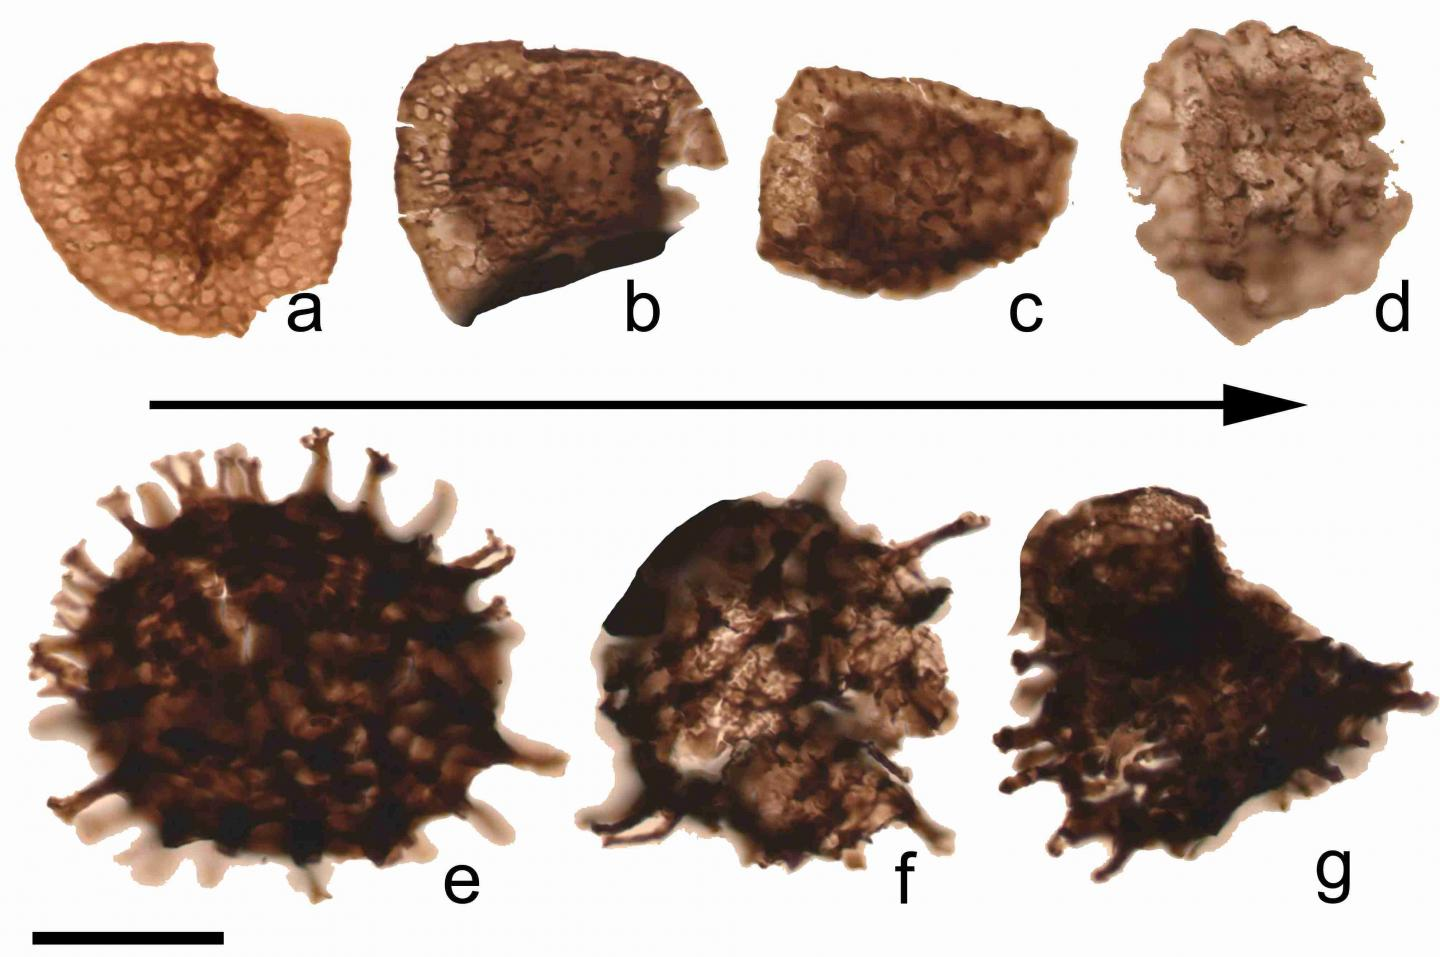 Fossil spores from the transitional layers between the Devonian and Carboniferous geological periods